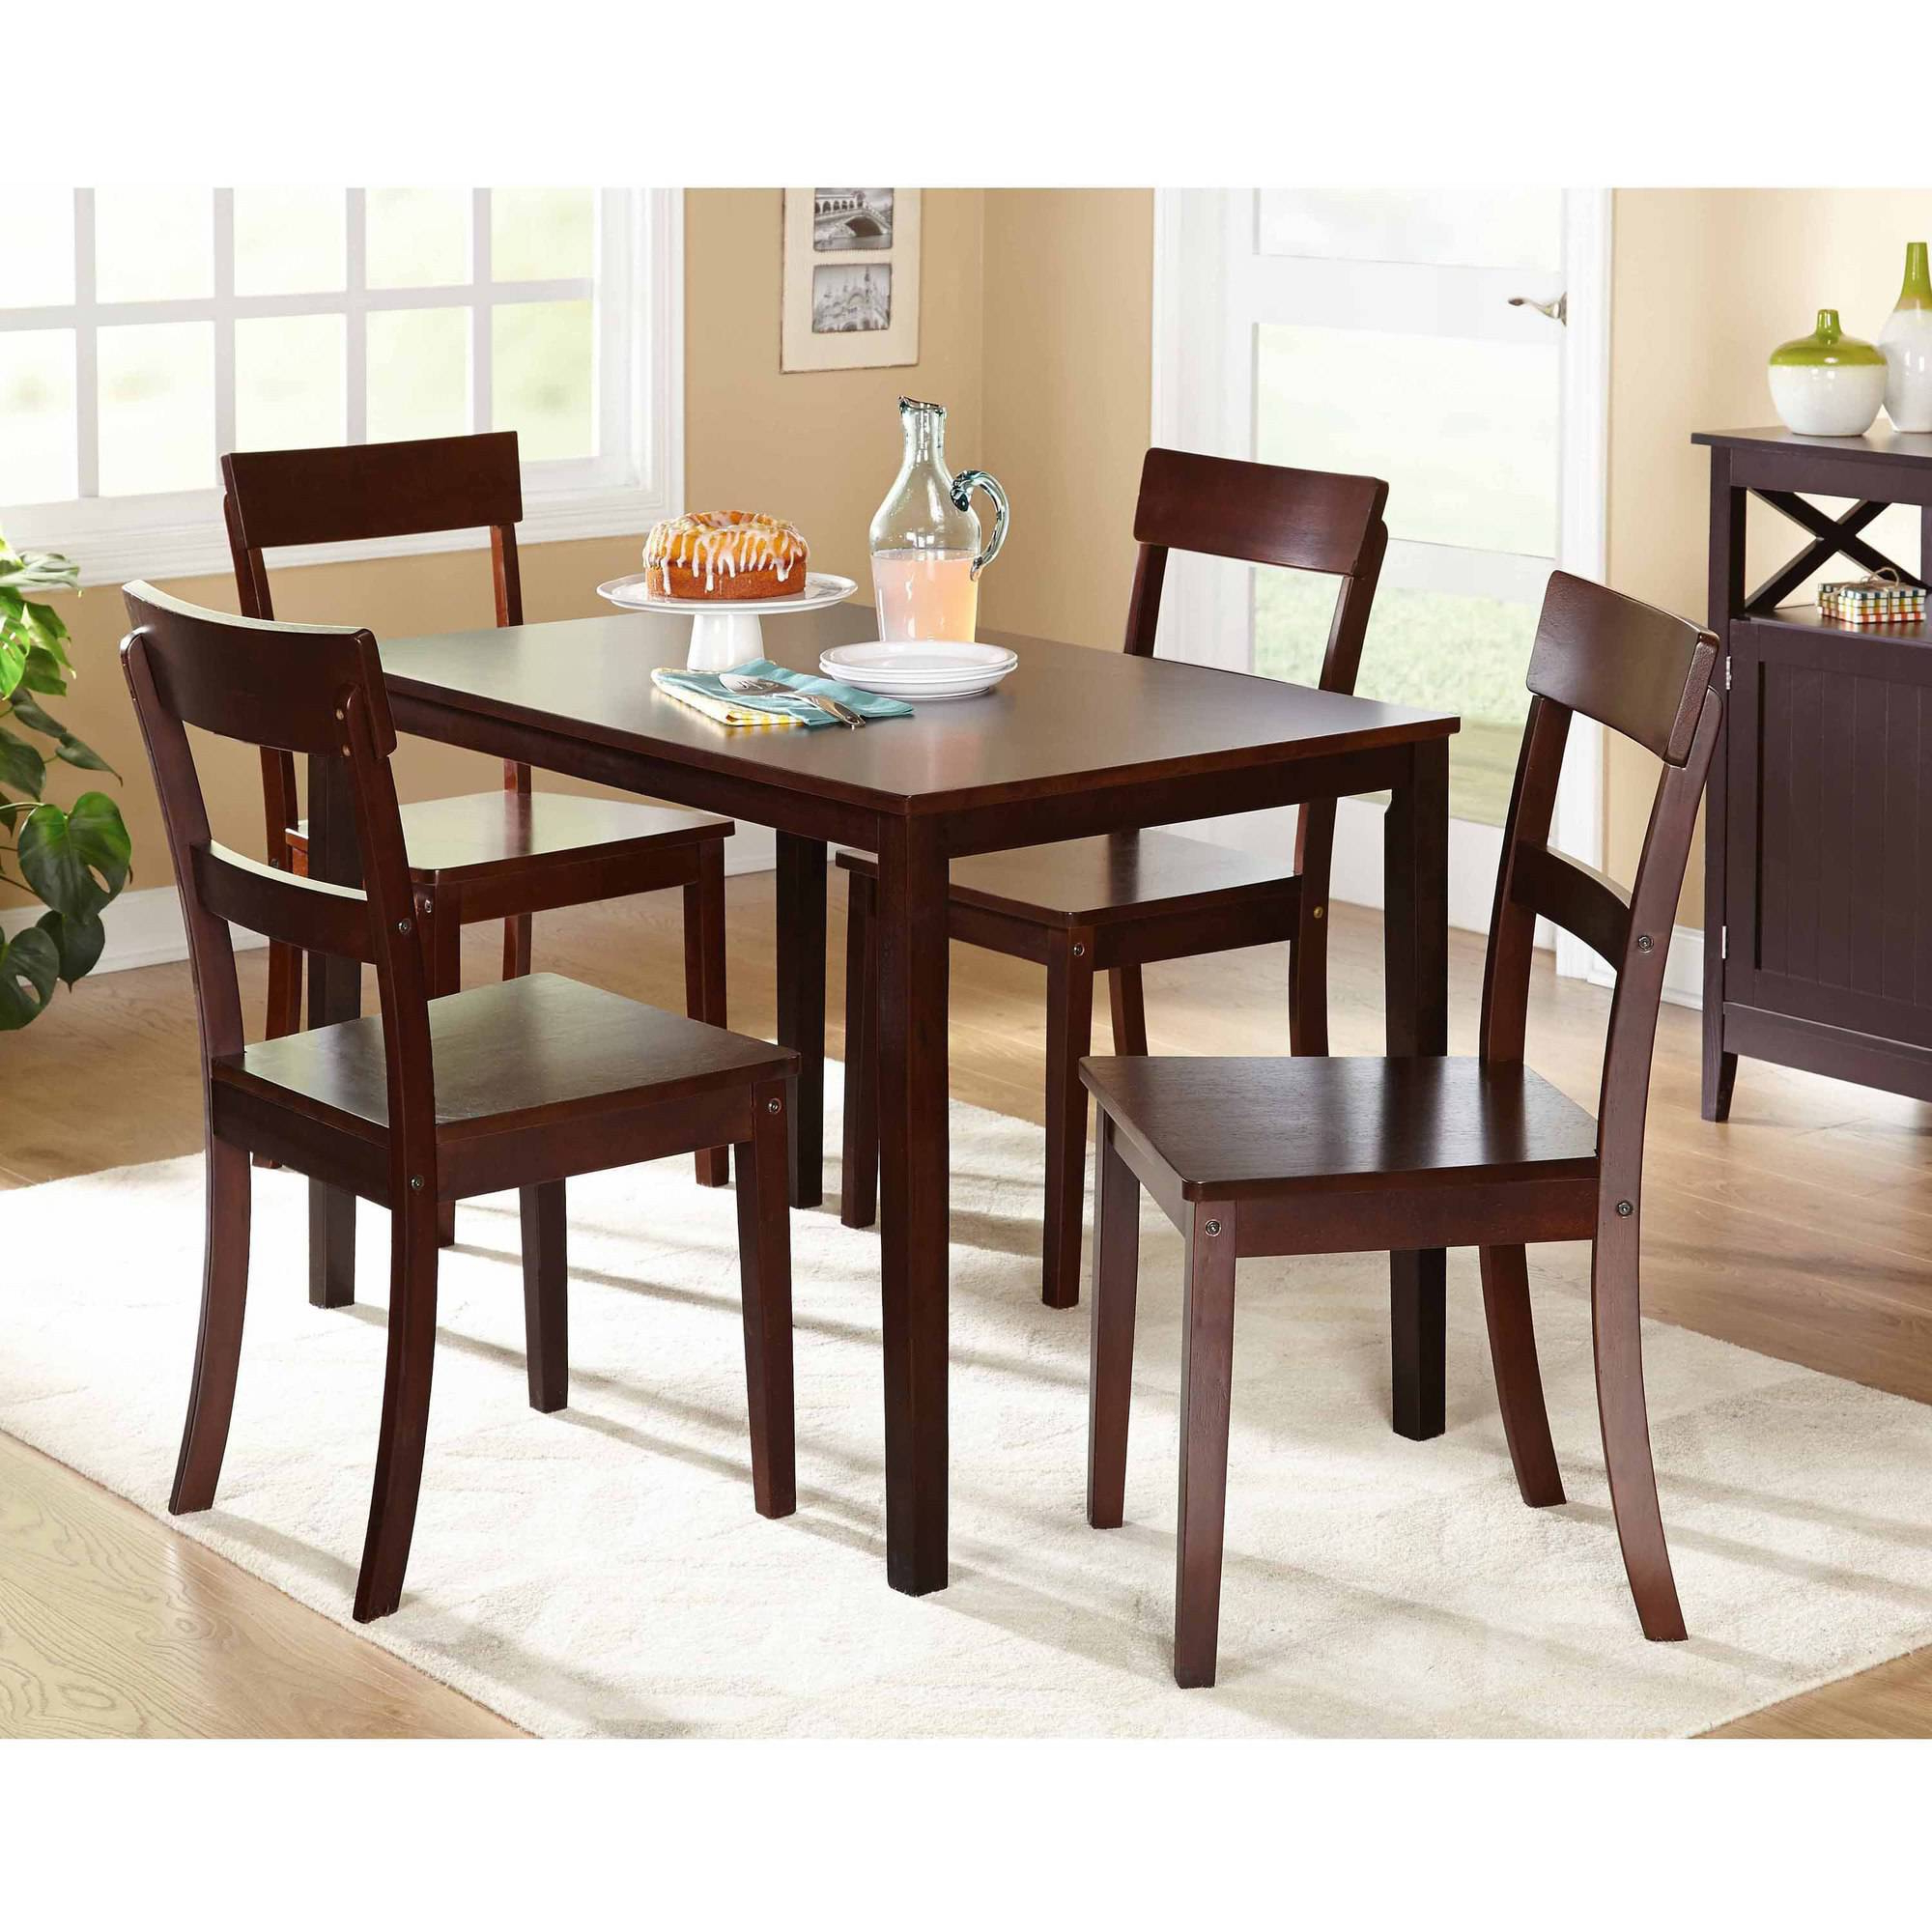 5 Piece Dining Sets Within Most Recently Released Beverly 5 Piece Dining Set, Multiple Finishes – Walmart (View 4 of 25)